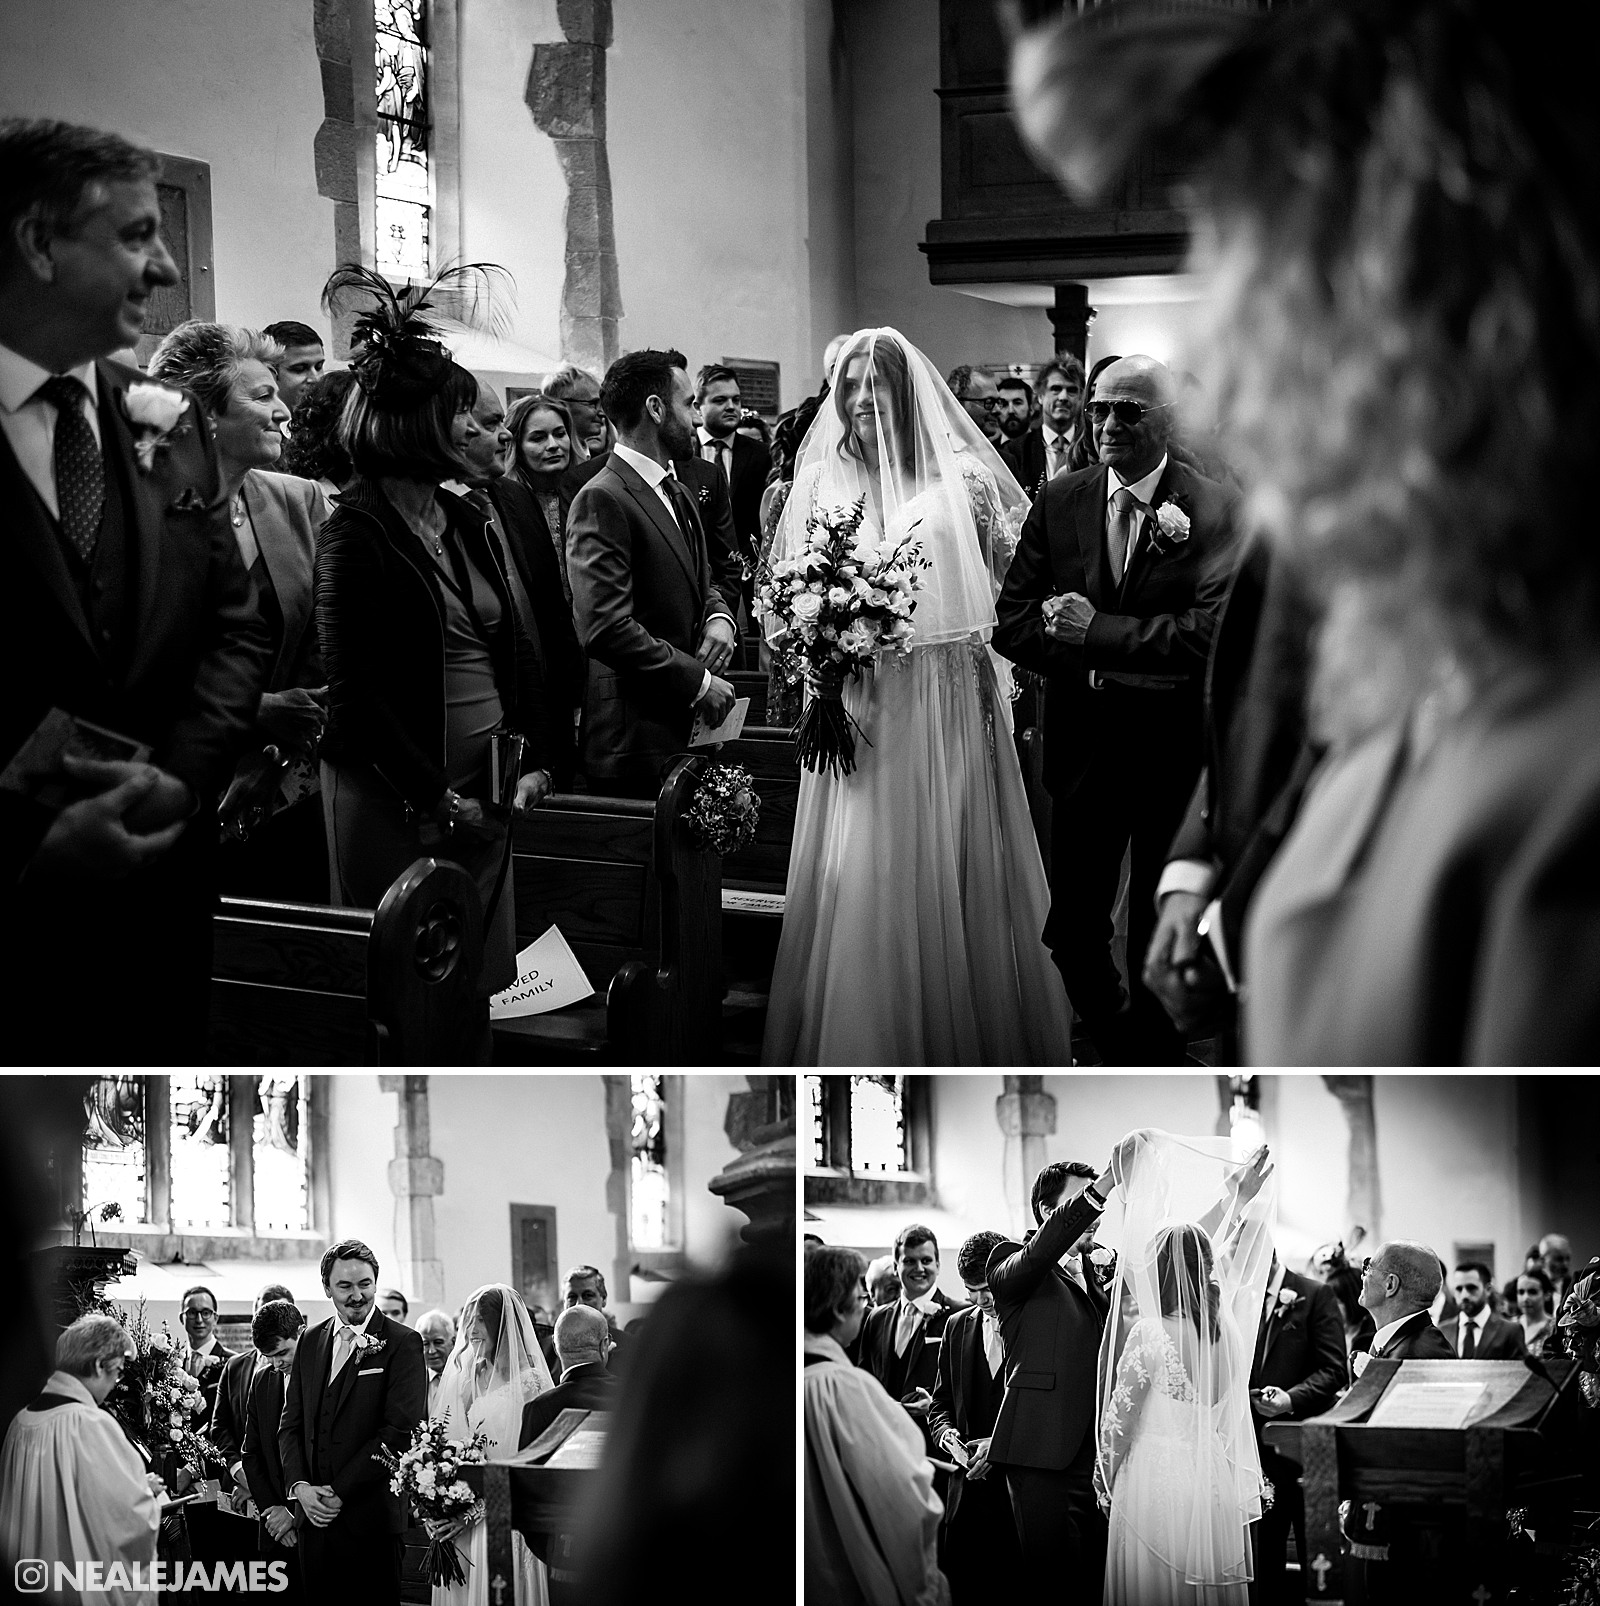 Black and white photo of a bride being walked down the aisle